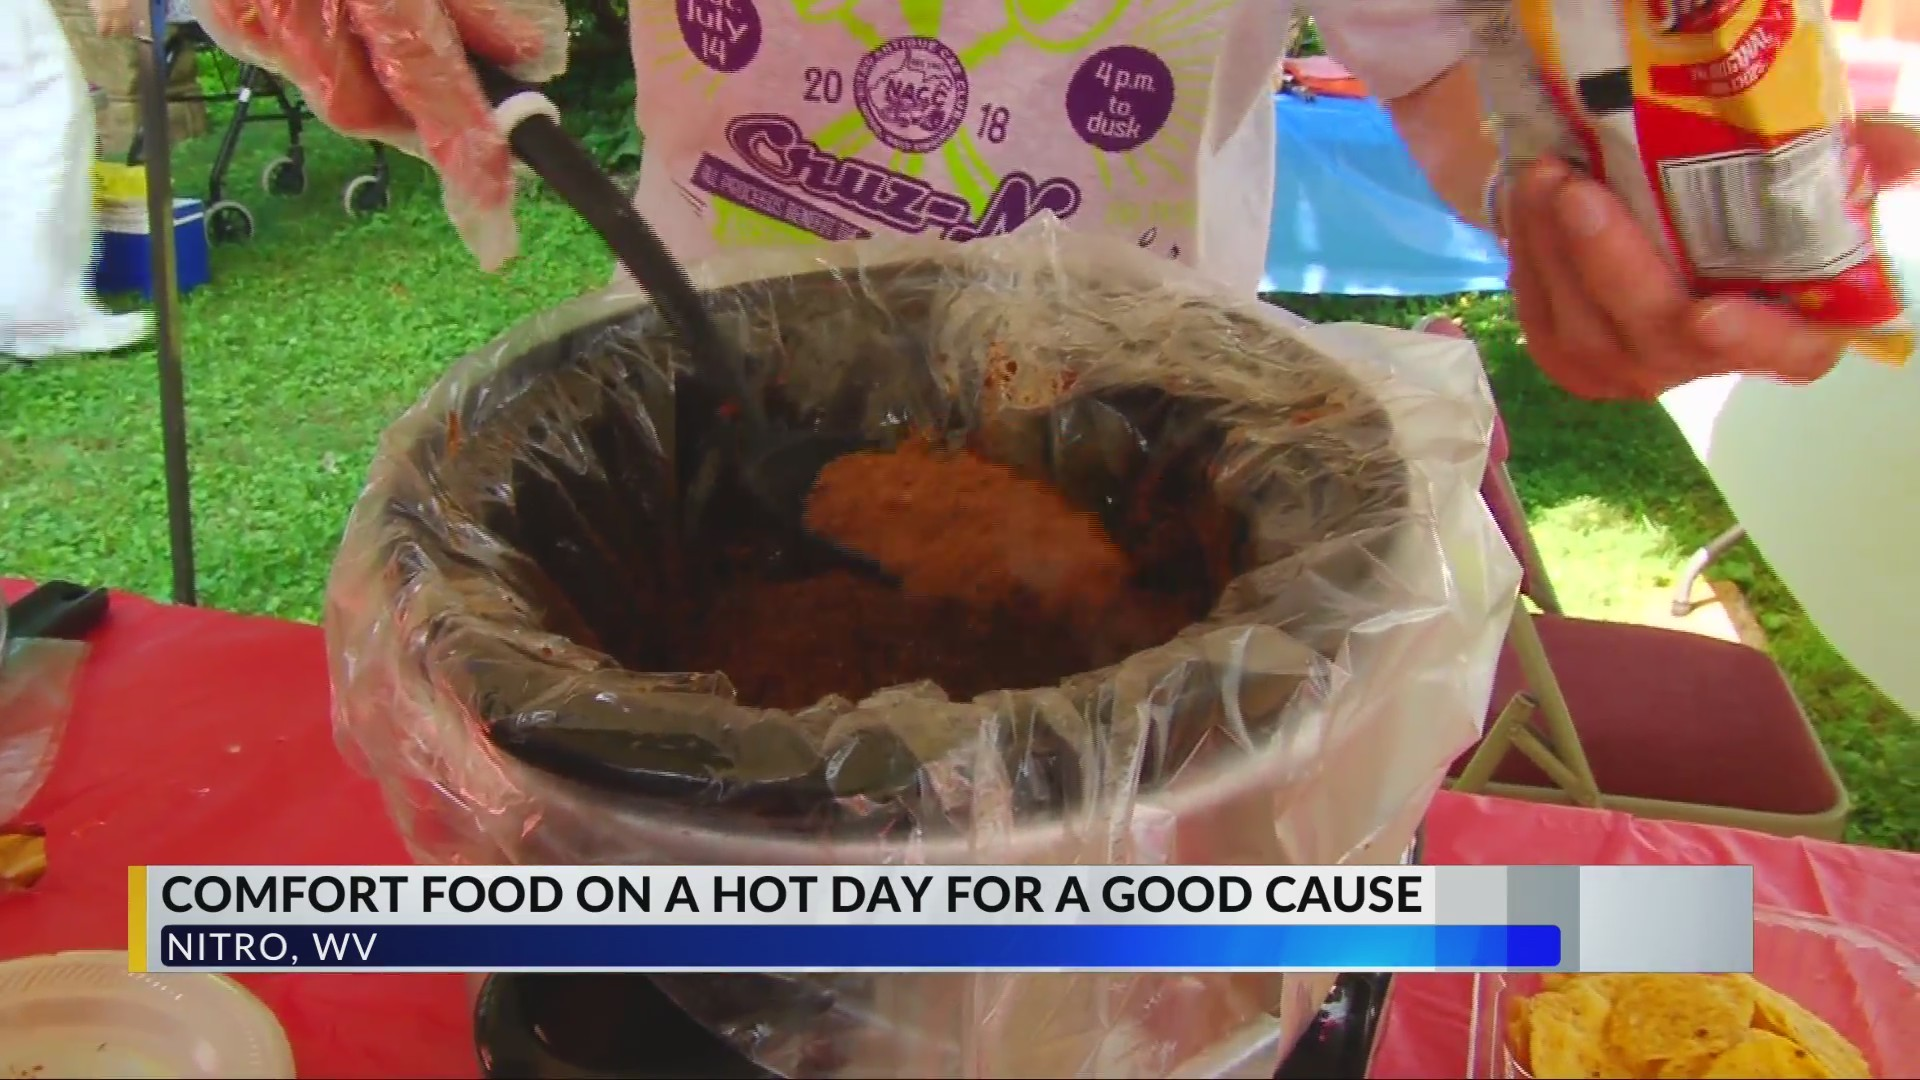 7th Taste of Nitro Cooking Up Comfort Food For Good Cause